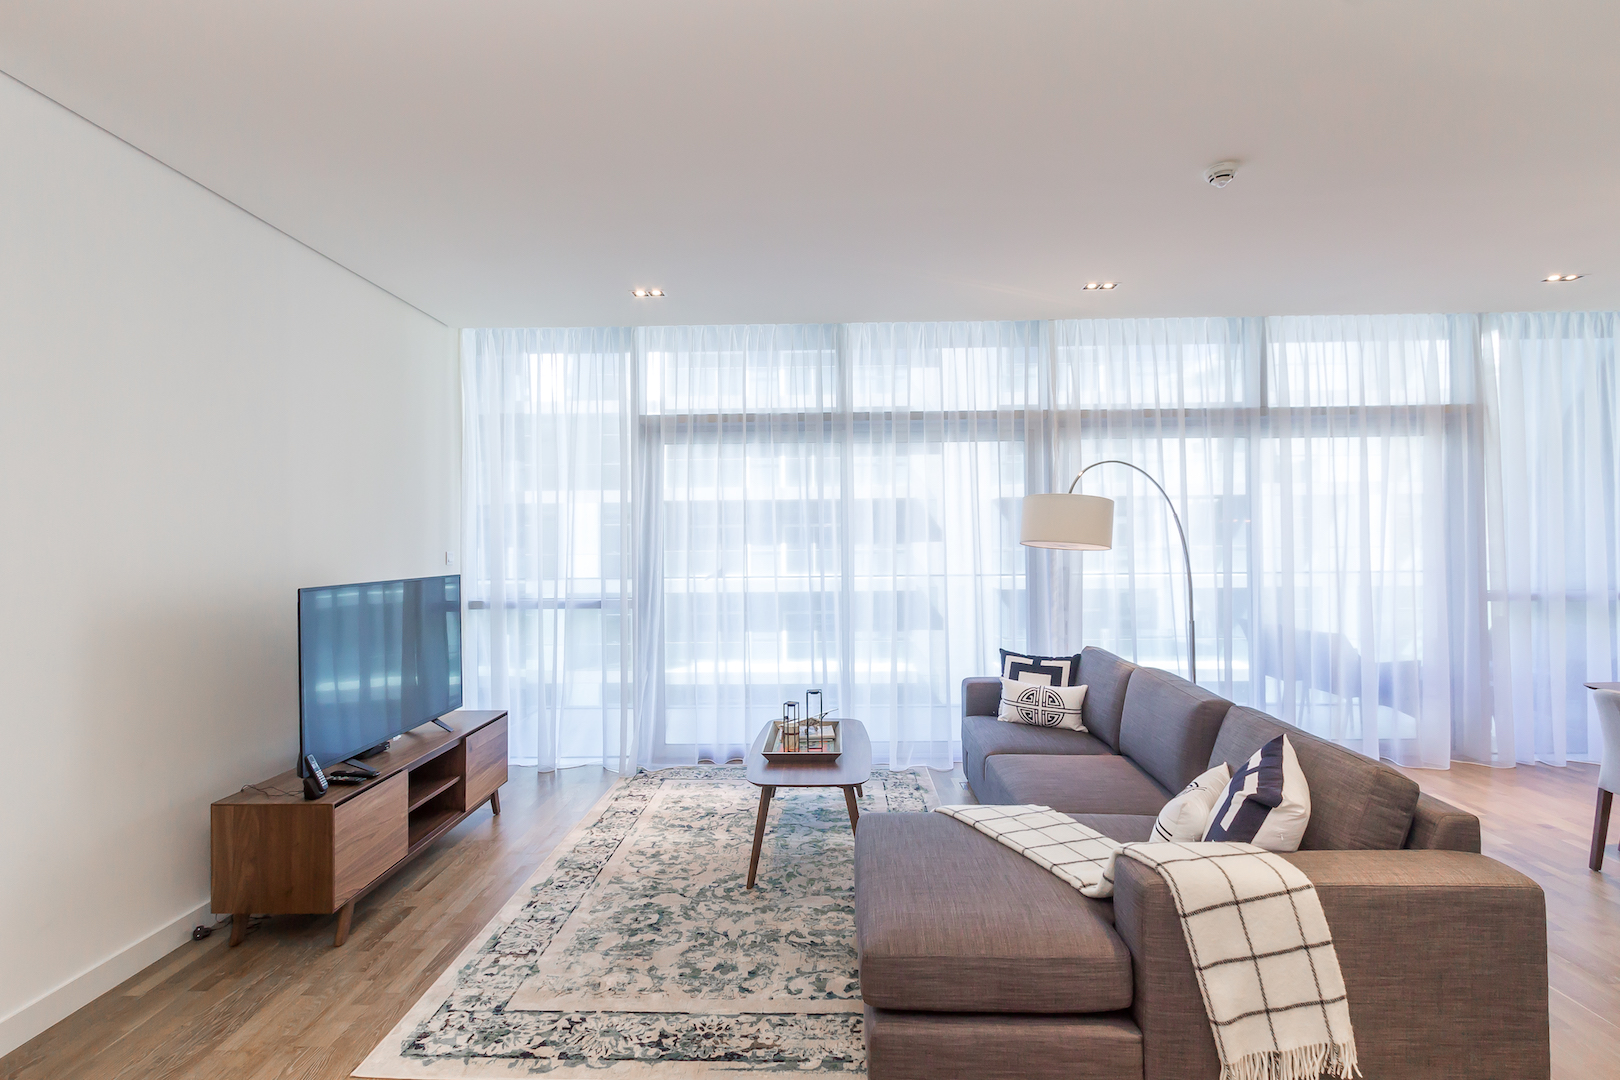 Live Like How You Want, Yet Affordable 1 Bed in City Walk #303 Bldg 22 photo 21763599